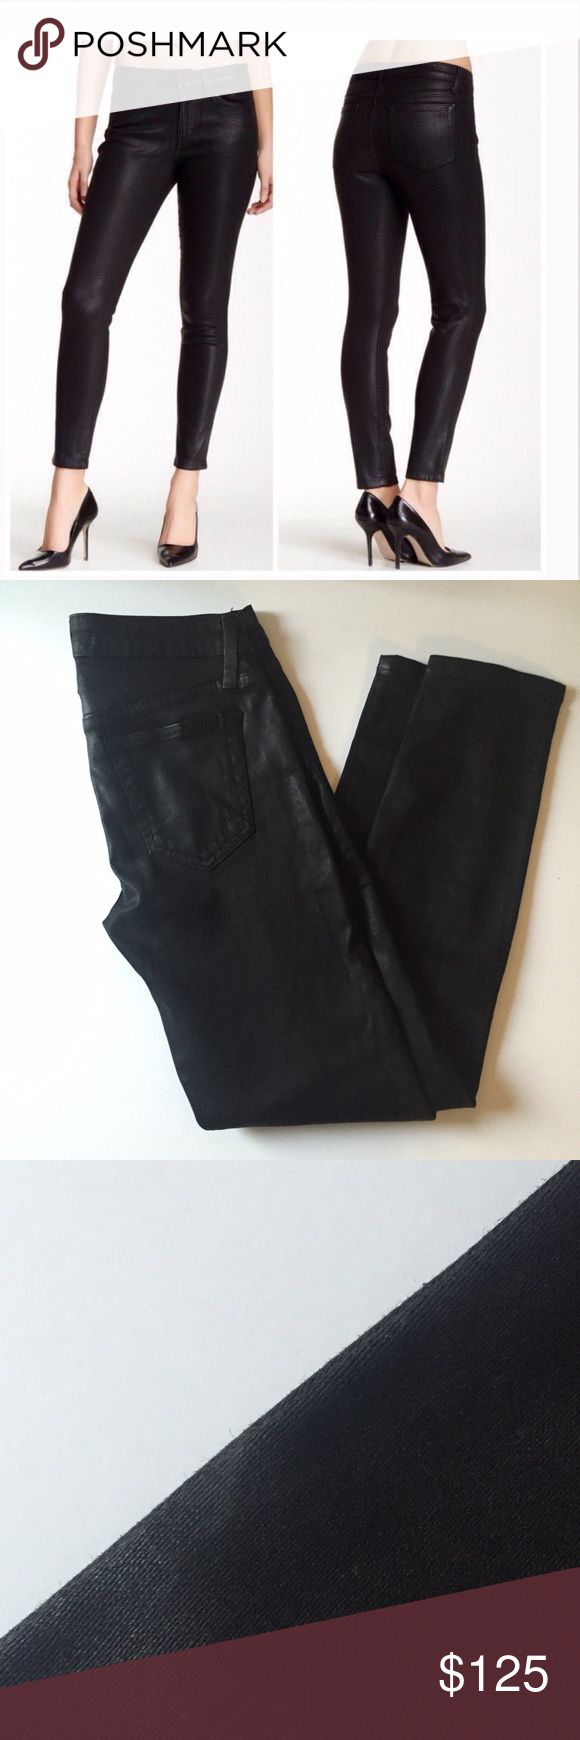 """Joe's jeans wax coated """"the skinny ankle"""" Amazing jeans!   Great condition.  One small lighter spot as shown on side seam (unnoticeable). Fits TTS.  27"""" inseam, 8.5"""" rise, 14.5"""" waist.   No trades. Reasonable offers welcome Note: 20% off bundles of 2+ items in my closet! Joe's Jeans Jeans"""